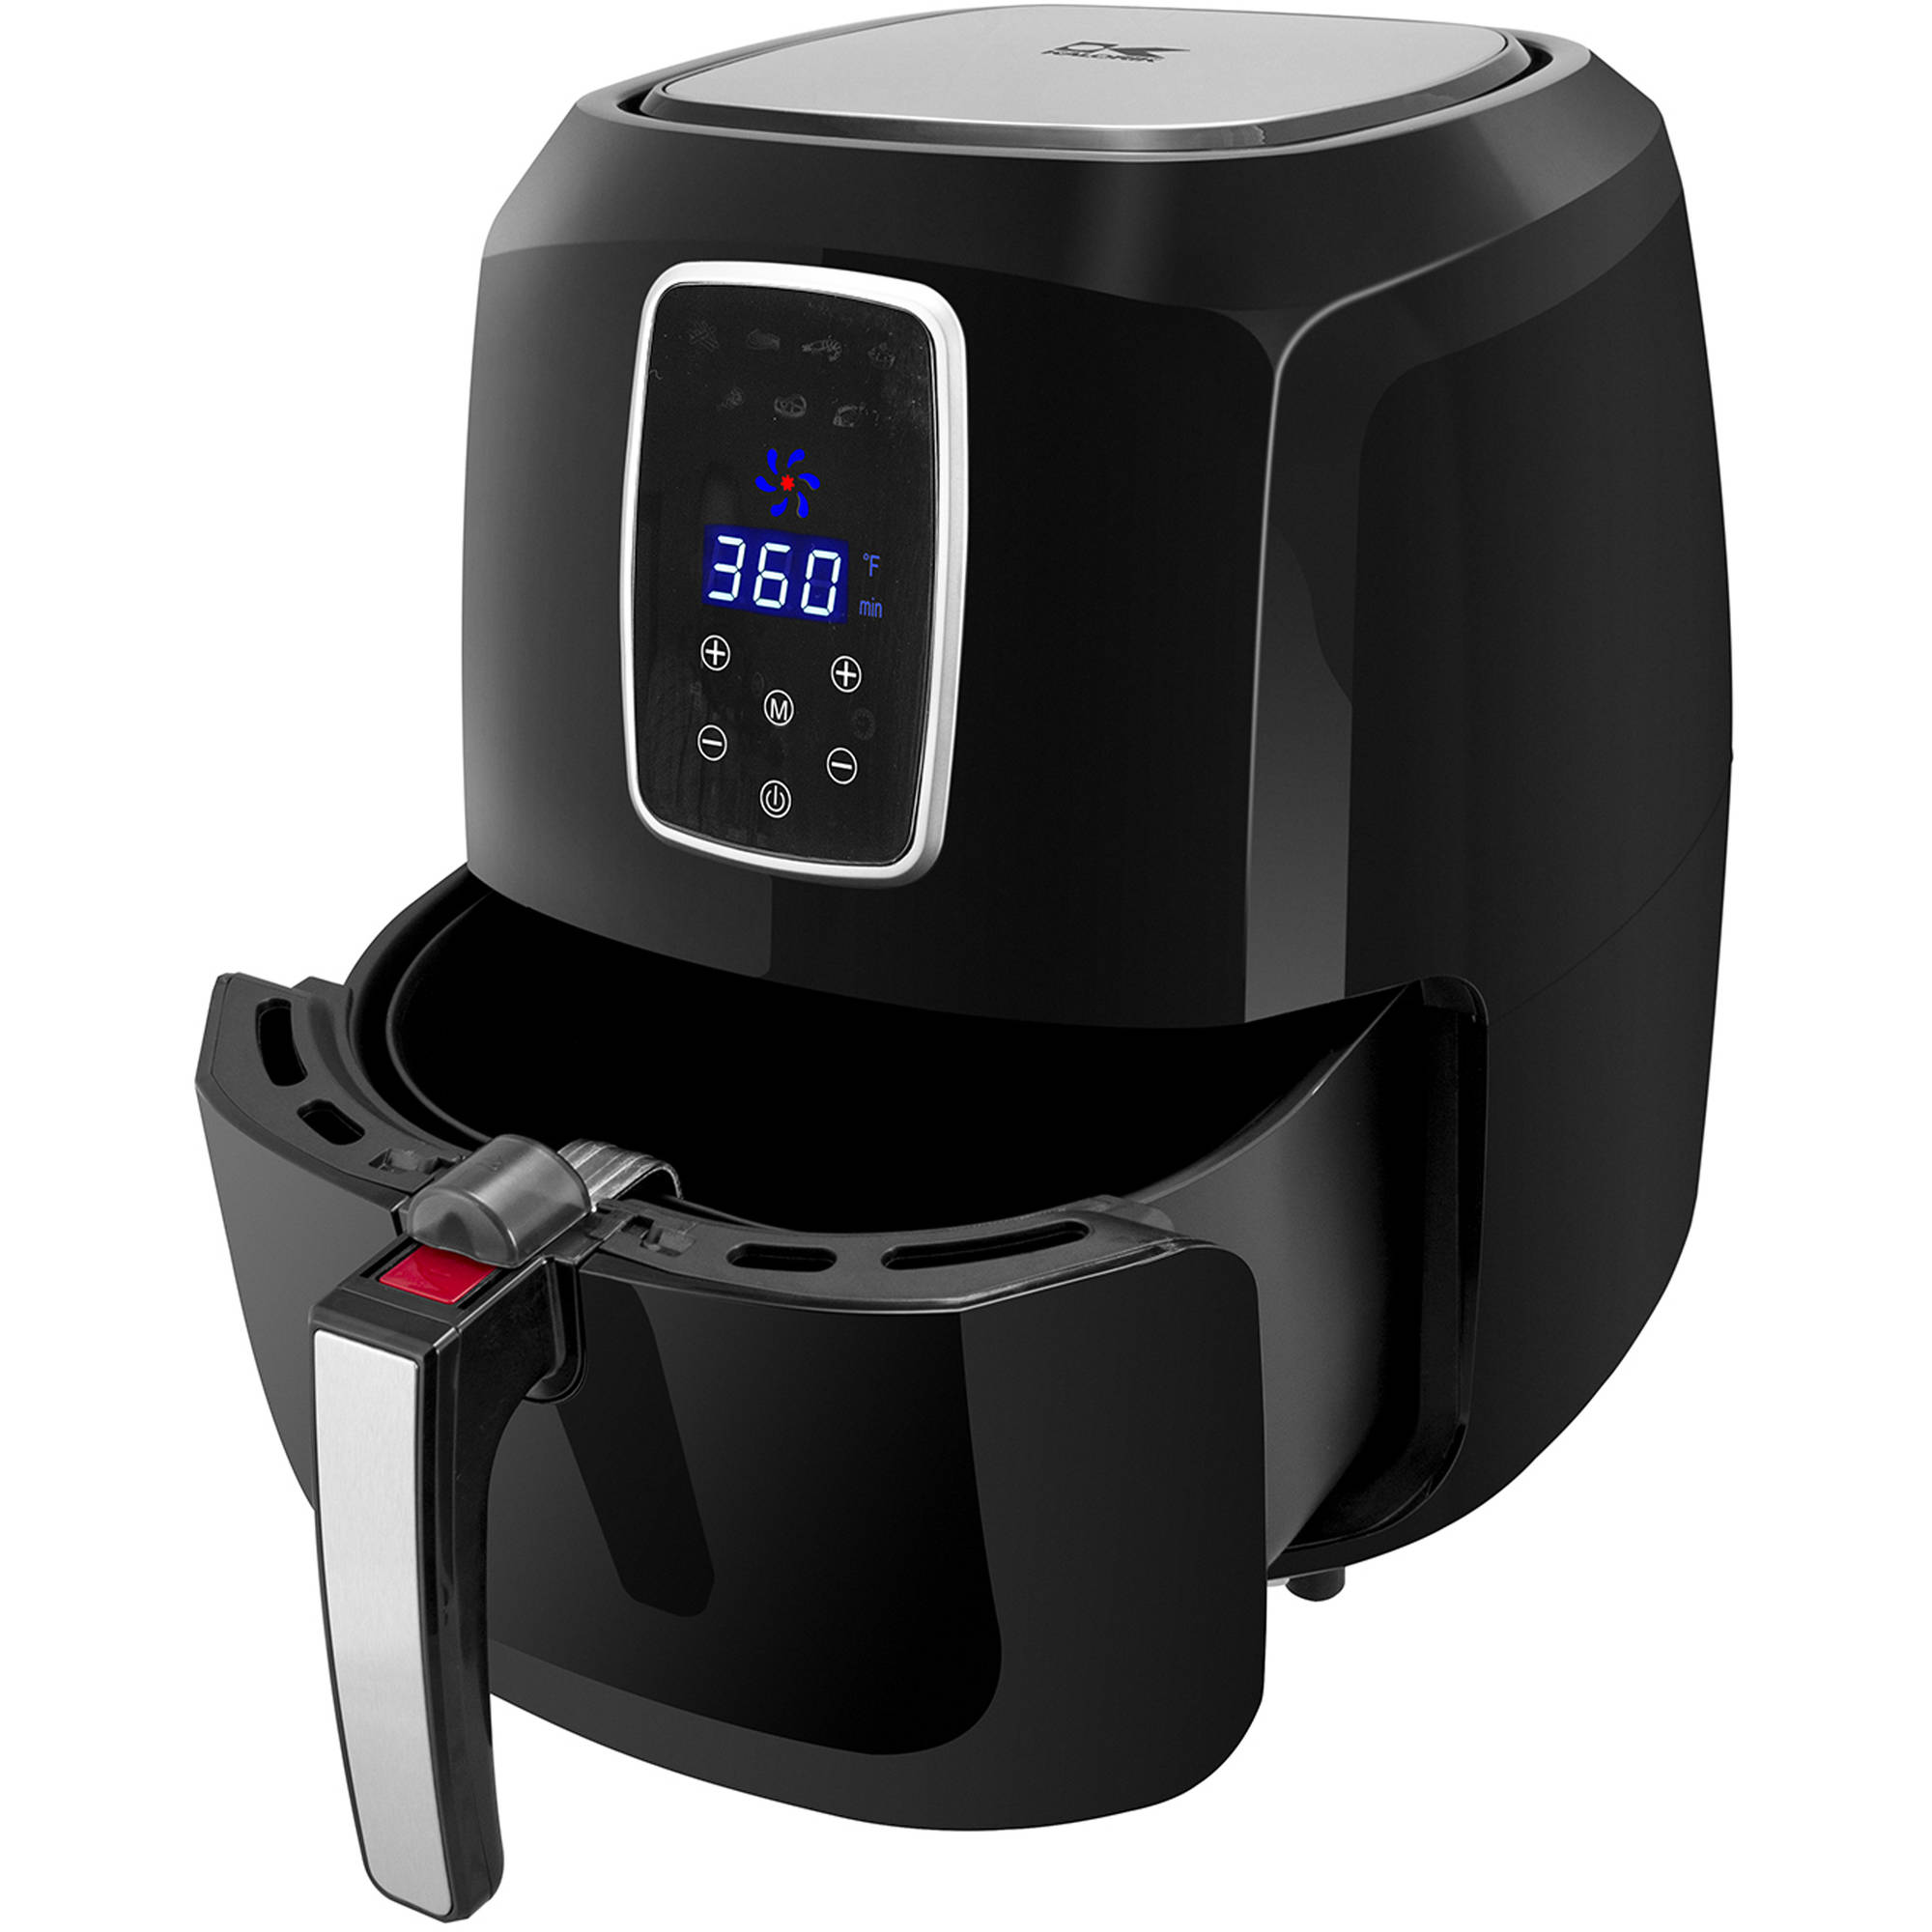 Kalorik Black and Stainless Steel XL Digital Family Airfryer